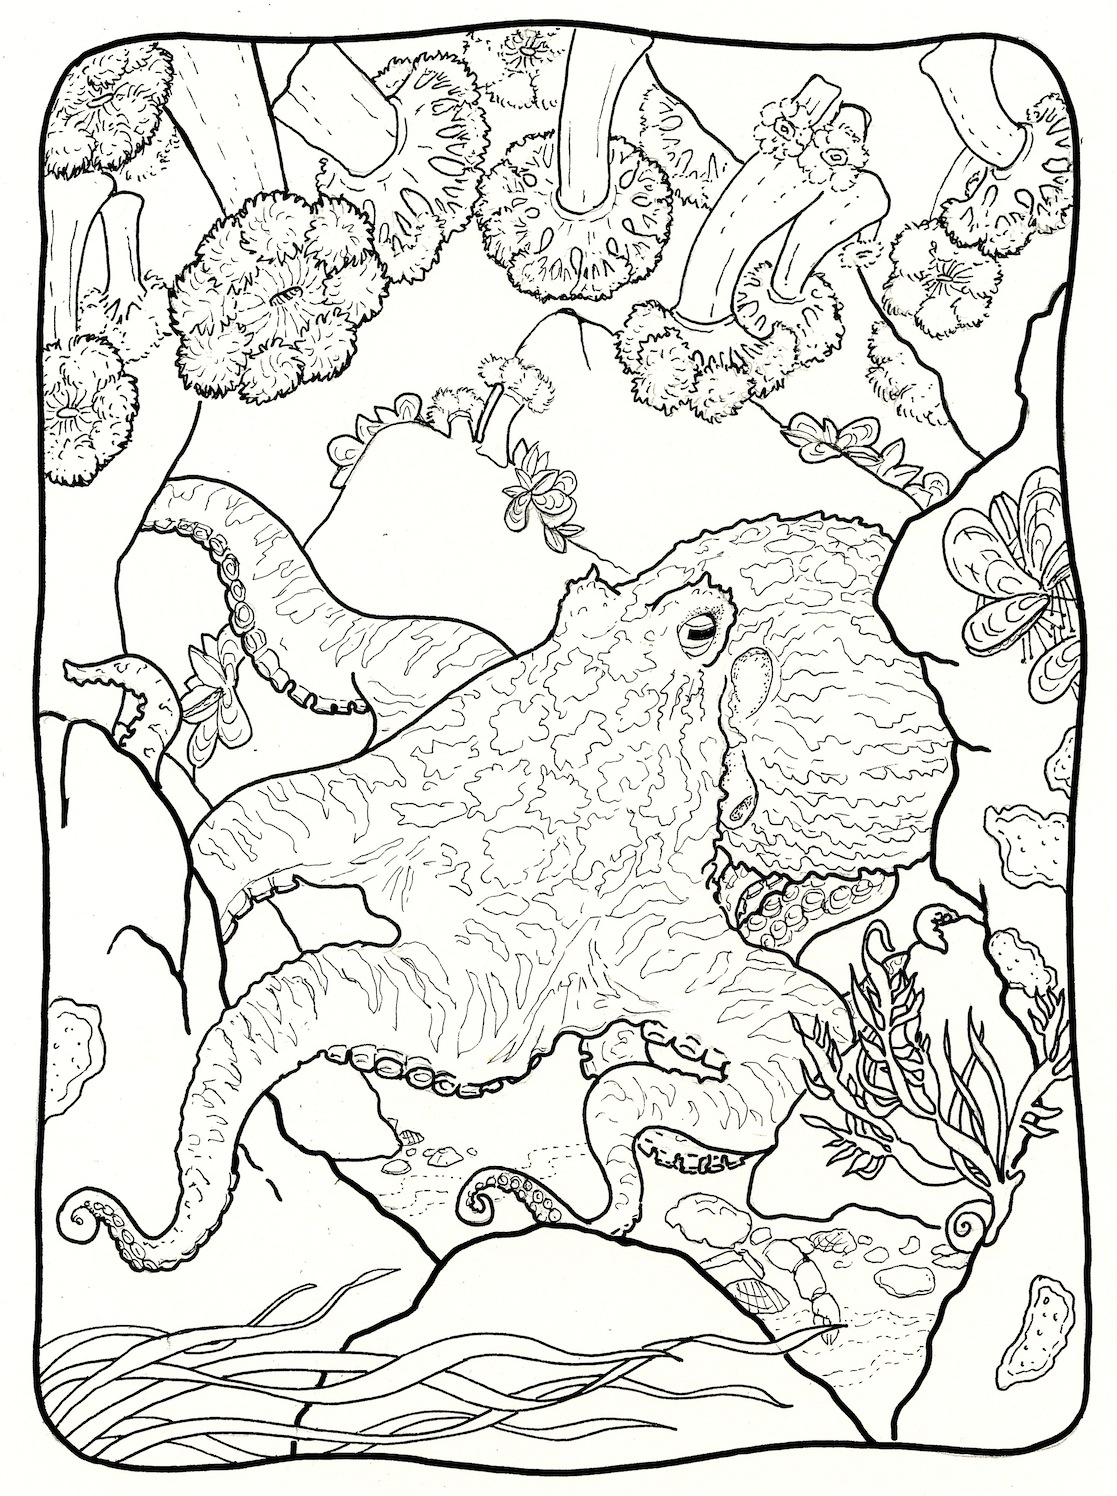 GALLERY: Giant Pacific Octopus Drawing